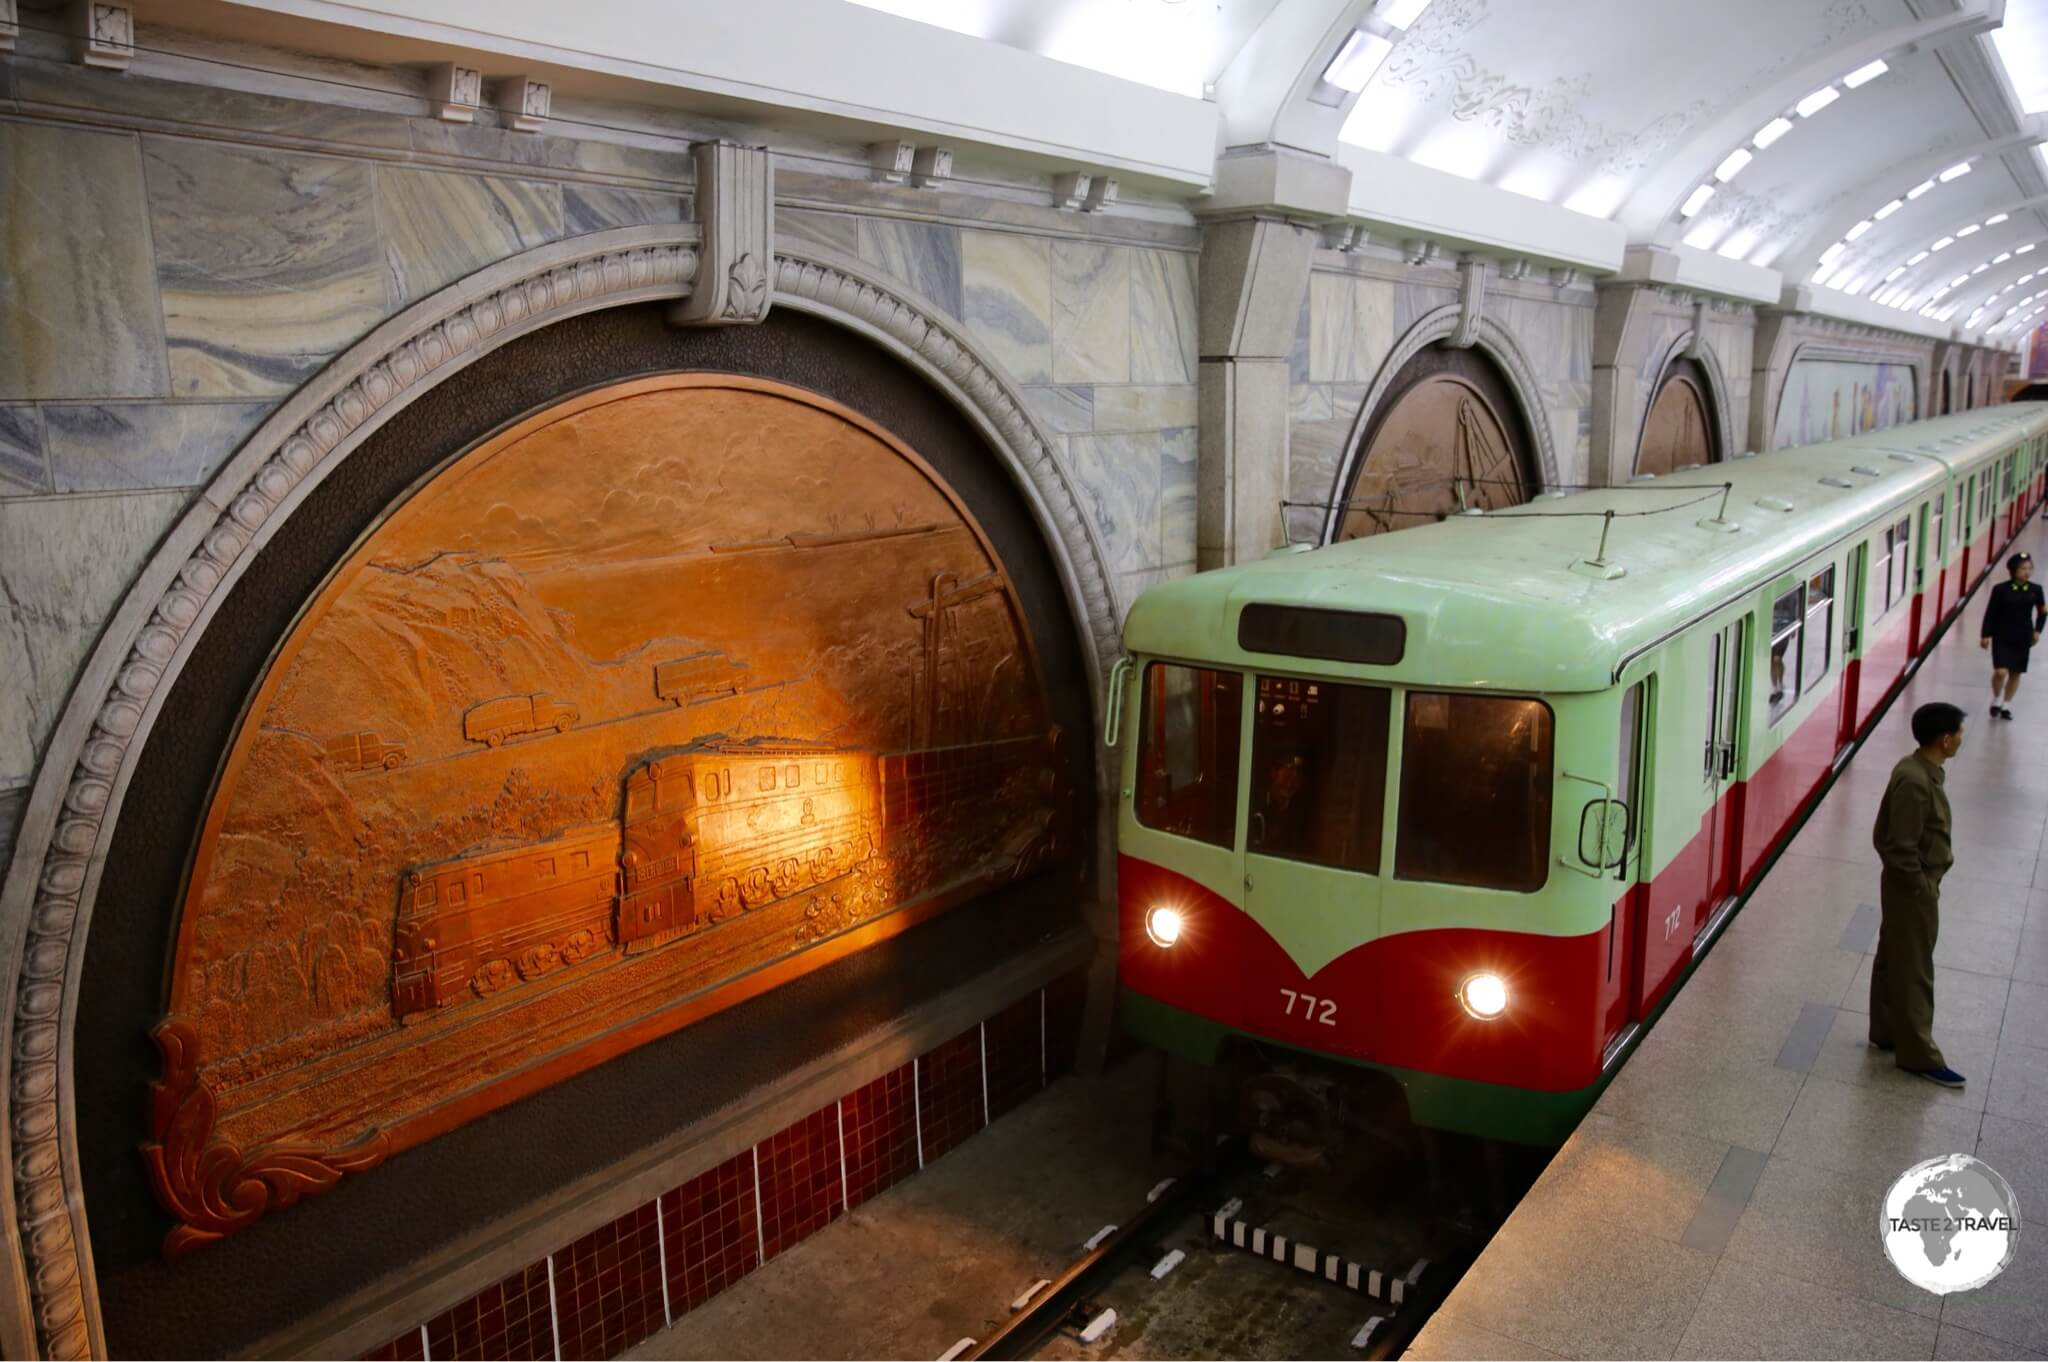 The headlight from a loco illuminates a bronze panel at Puhung station.